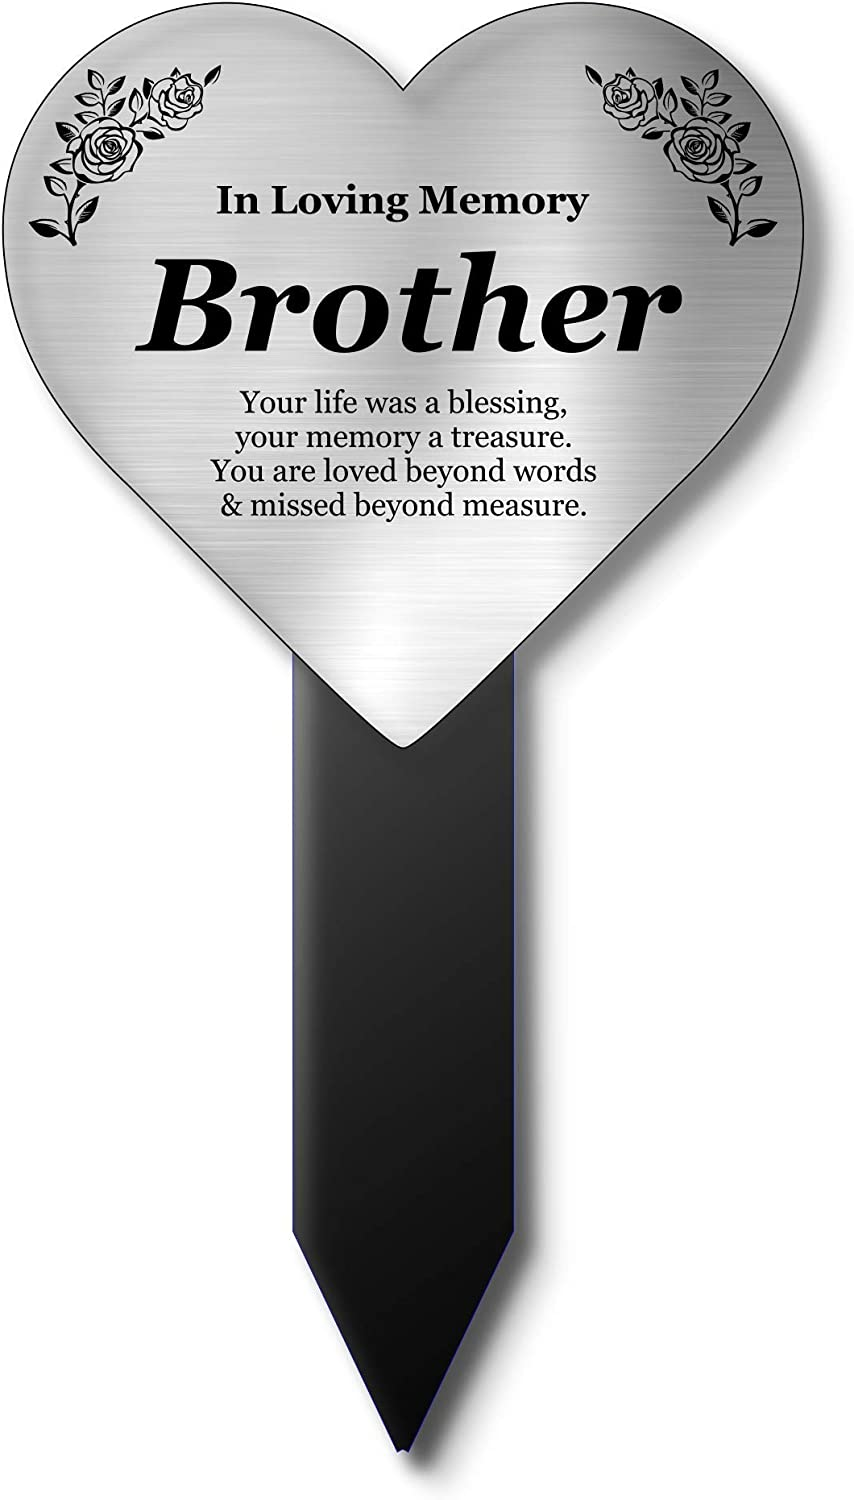 OriginDesigned Brother Memorial Remembrance Heart Shaped Plaque Stake - Silver, Waterproof, Outdoor, Grave Marker, Tribute, Plant Marker (Silver)